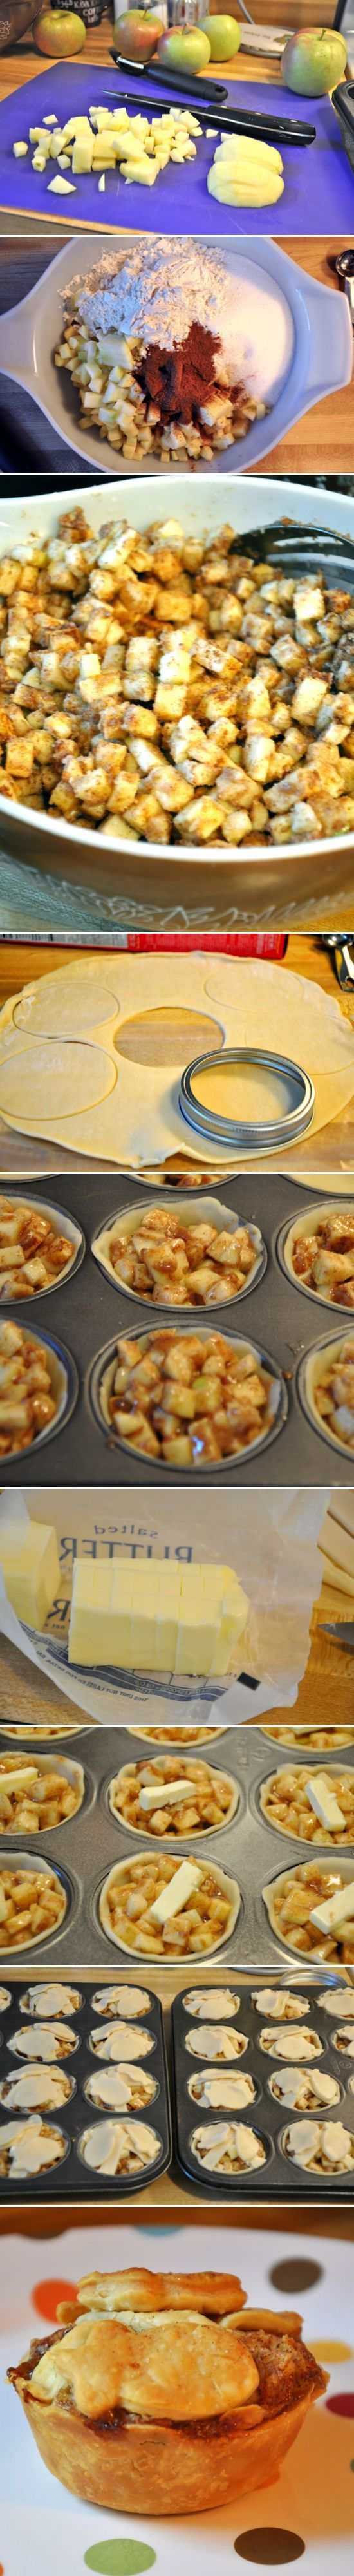 Mini Apple Pies. Mix the apples with: 12 tablespoons of flour, 1 1/2c of sugar, 4 heaping teaspoons of cinnamon, 1/4-1/2 teaspoon of nutmeg (depending on how much you like nutmeg...you could also leave it out)- You will also need: 4 tablespoons of chilled butter cut into 24 equal portions.  -two boxes of pilsbury pie crusts (four chilled NOT frozen crusts)